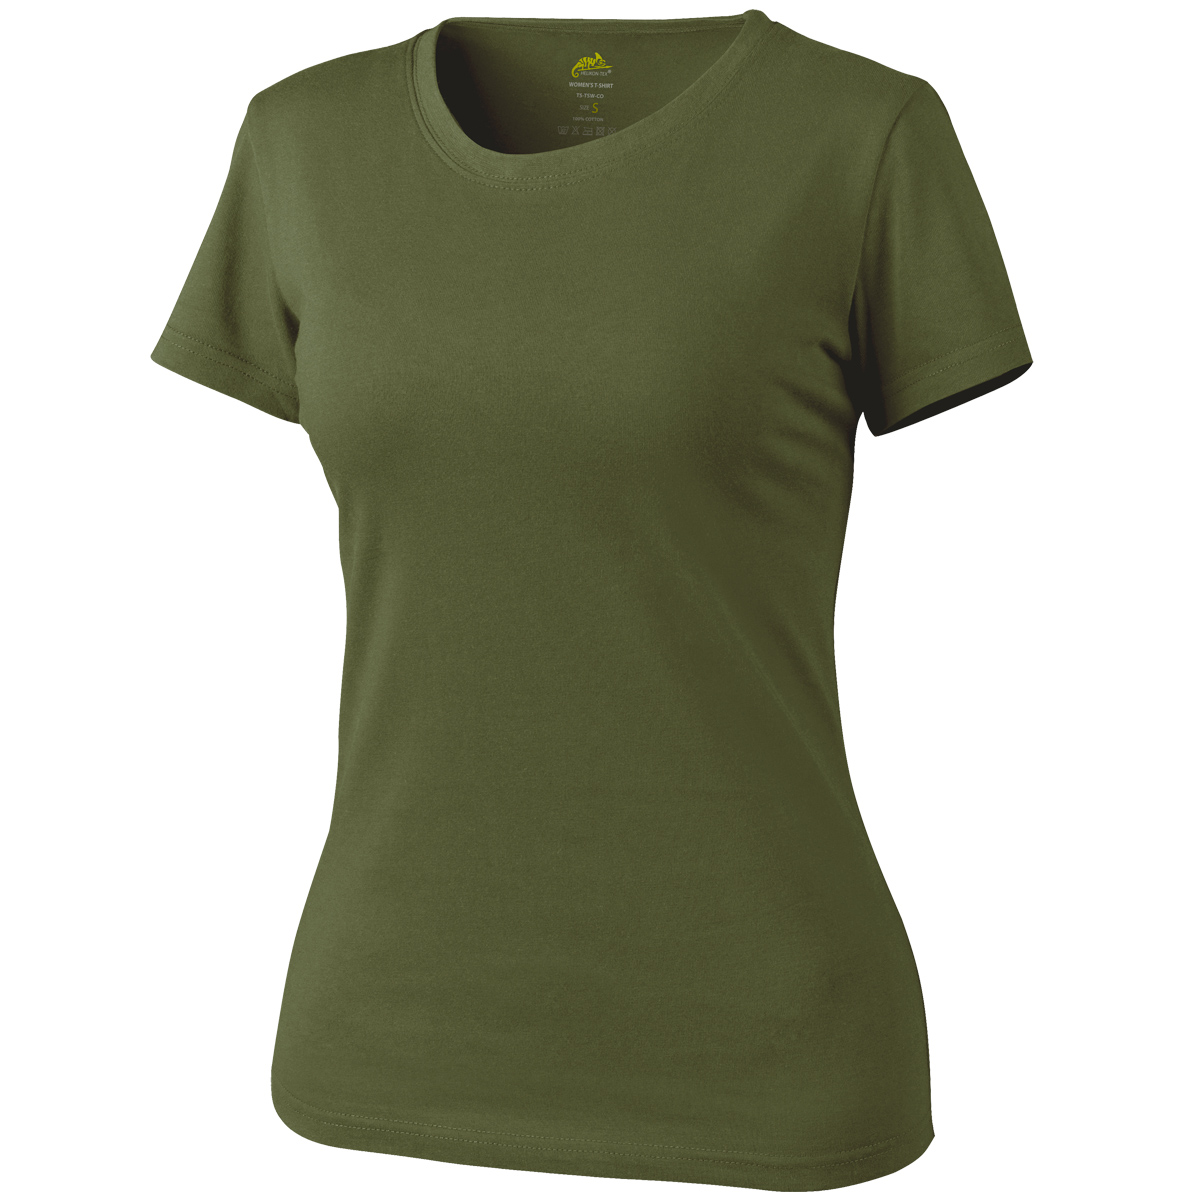 Details about Helikon Women s T-Shirt Gym Fitness Active Gear Army Casual  Everyday Olive Green c90d30a612